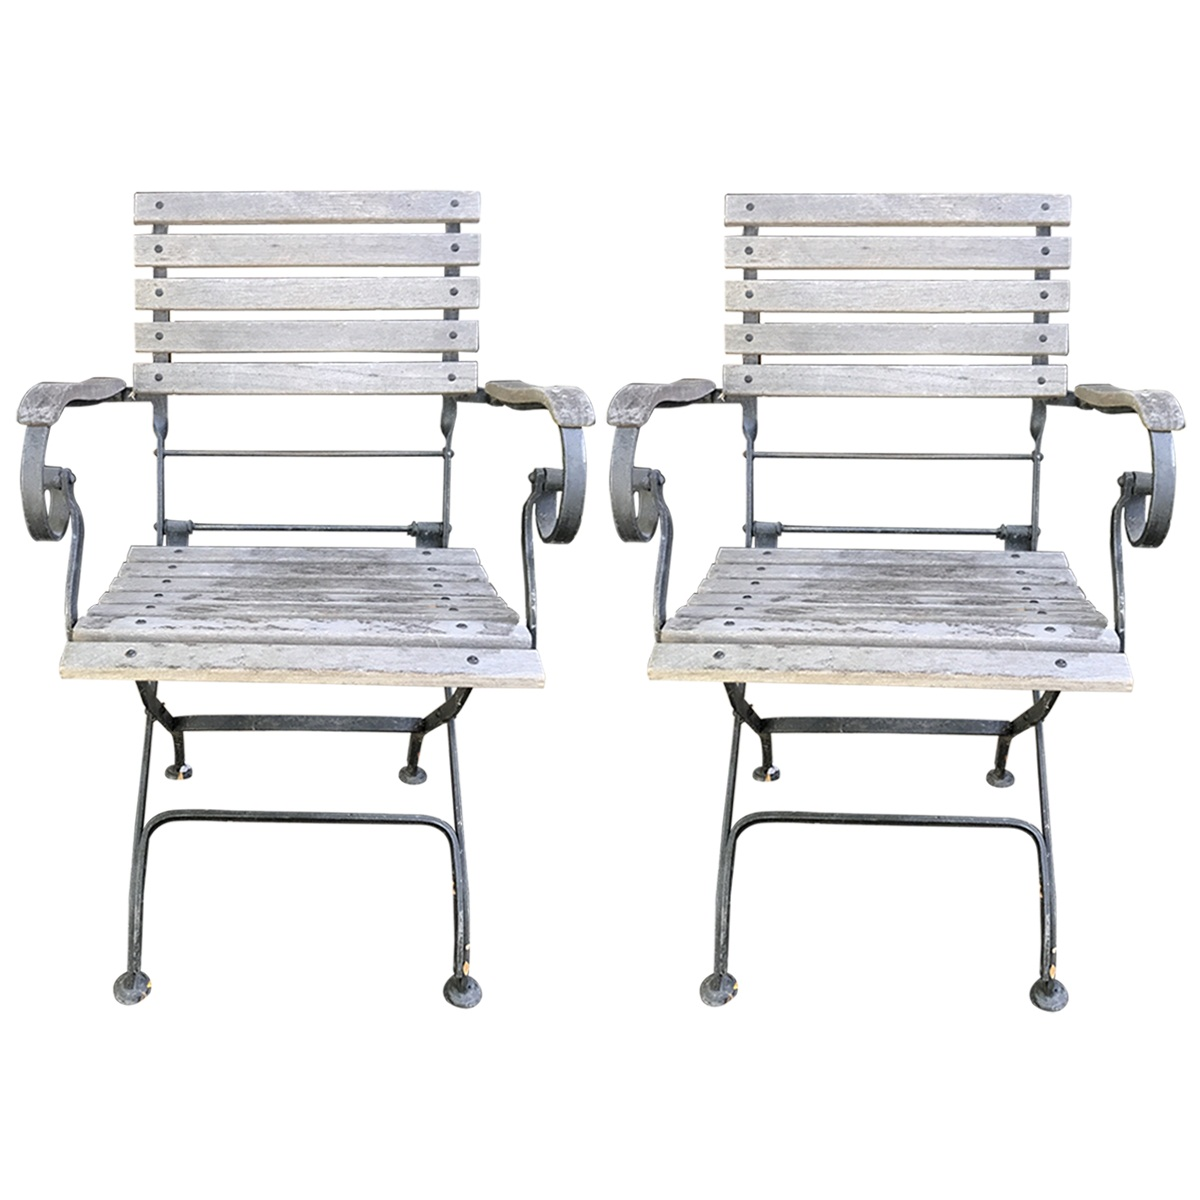 Smith & Hawken Outdoor Furniture Metal Prices